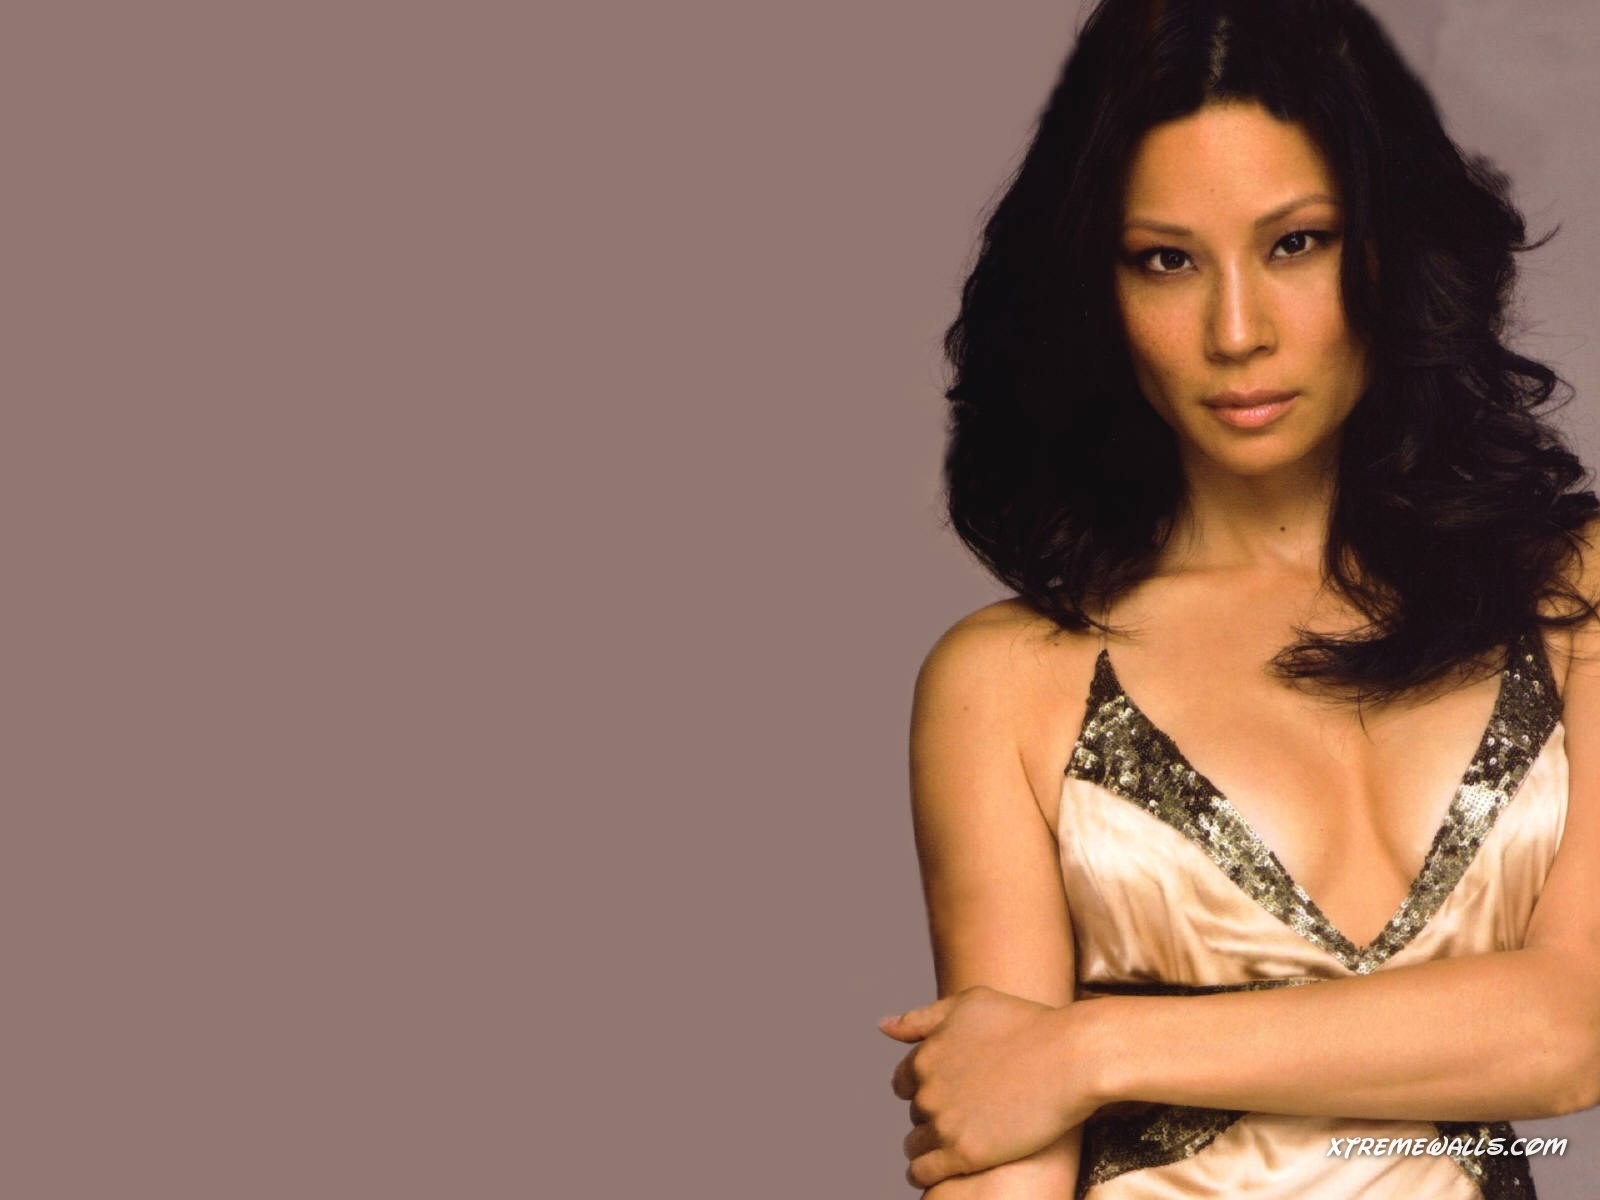 lucy liu free wallpaper - photo #22